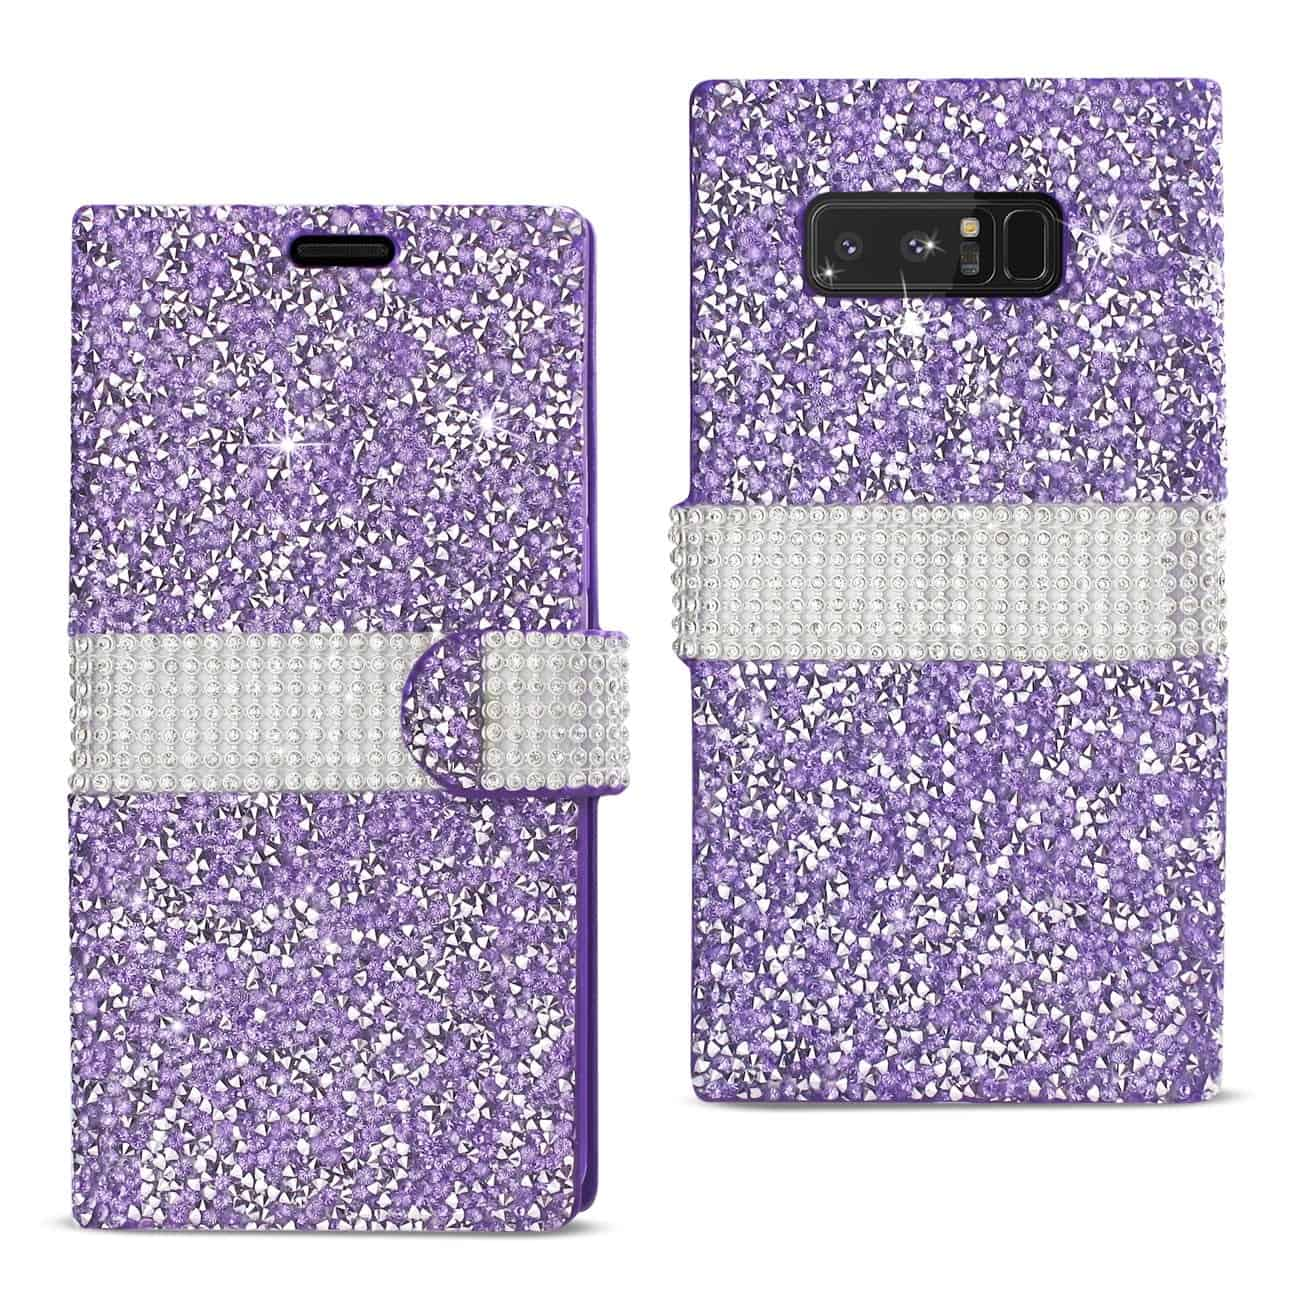 SAMSUNG GALAXY NOTE 8 DIAMOND RHINESTONE WALLET CASE IN PURPLE